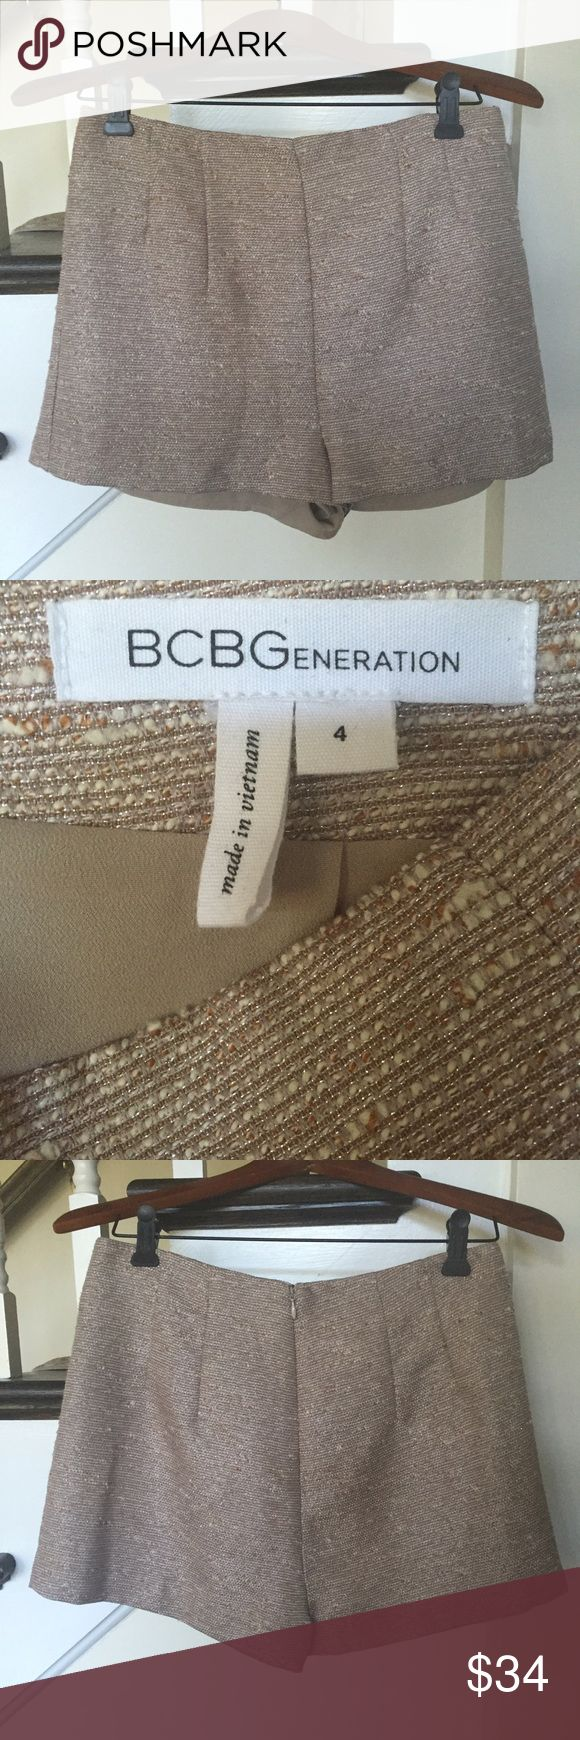 BCBGeneration dress shorts Never worn, sophisticated short in a tan/metallic tweed-like fabric. BCBGeneration Shorts